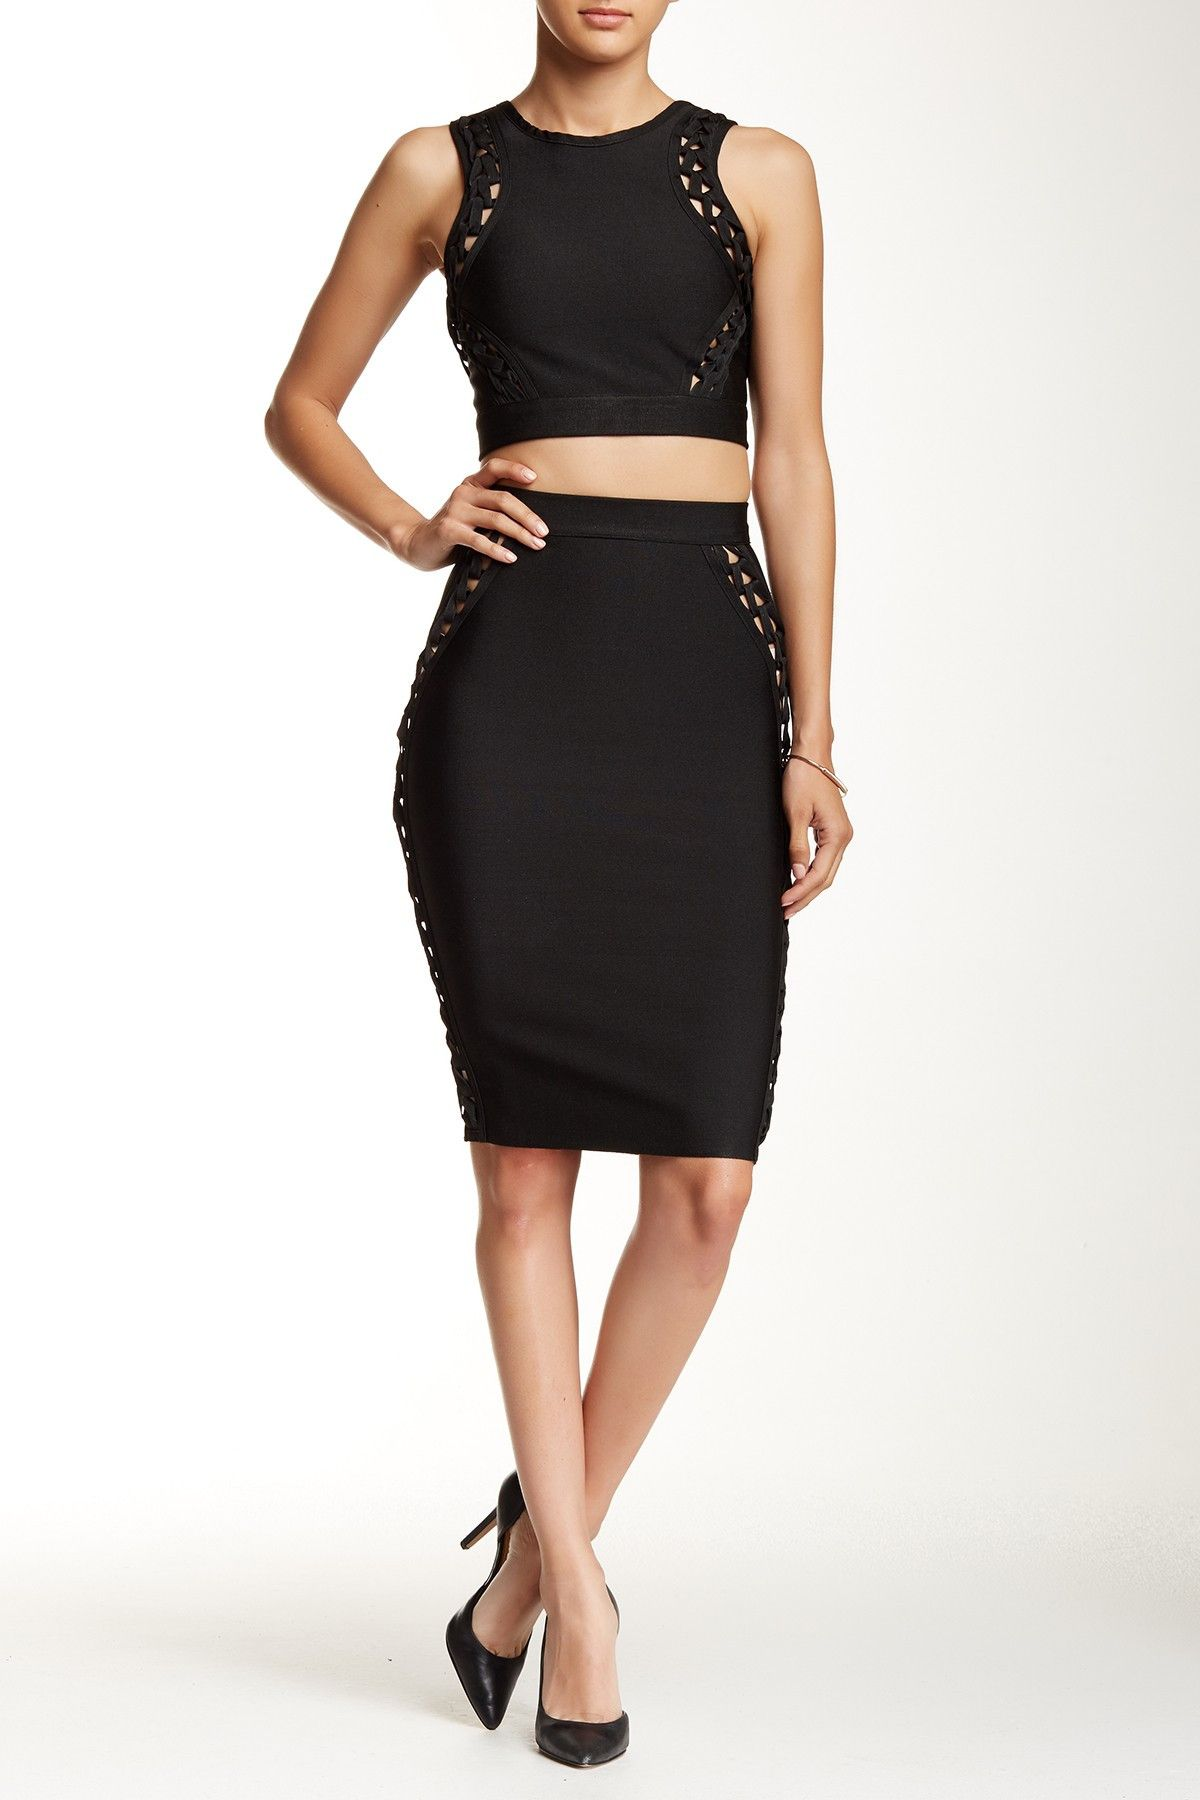 Wow Couture 2 Piece Braided Bodycon Dress Set At Nordstrom Rack Free Shipping On Orders Over 100 Set Dress Bodycon Dress Wow Couture [ 1800 x 1200 Pixel ]